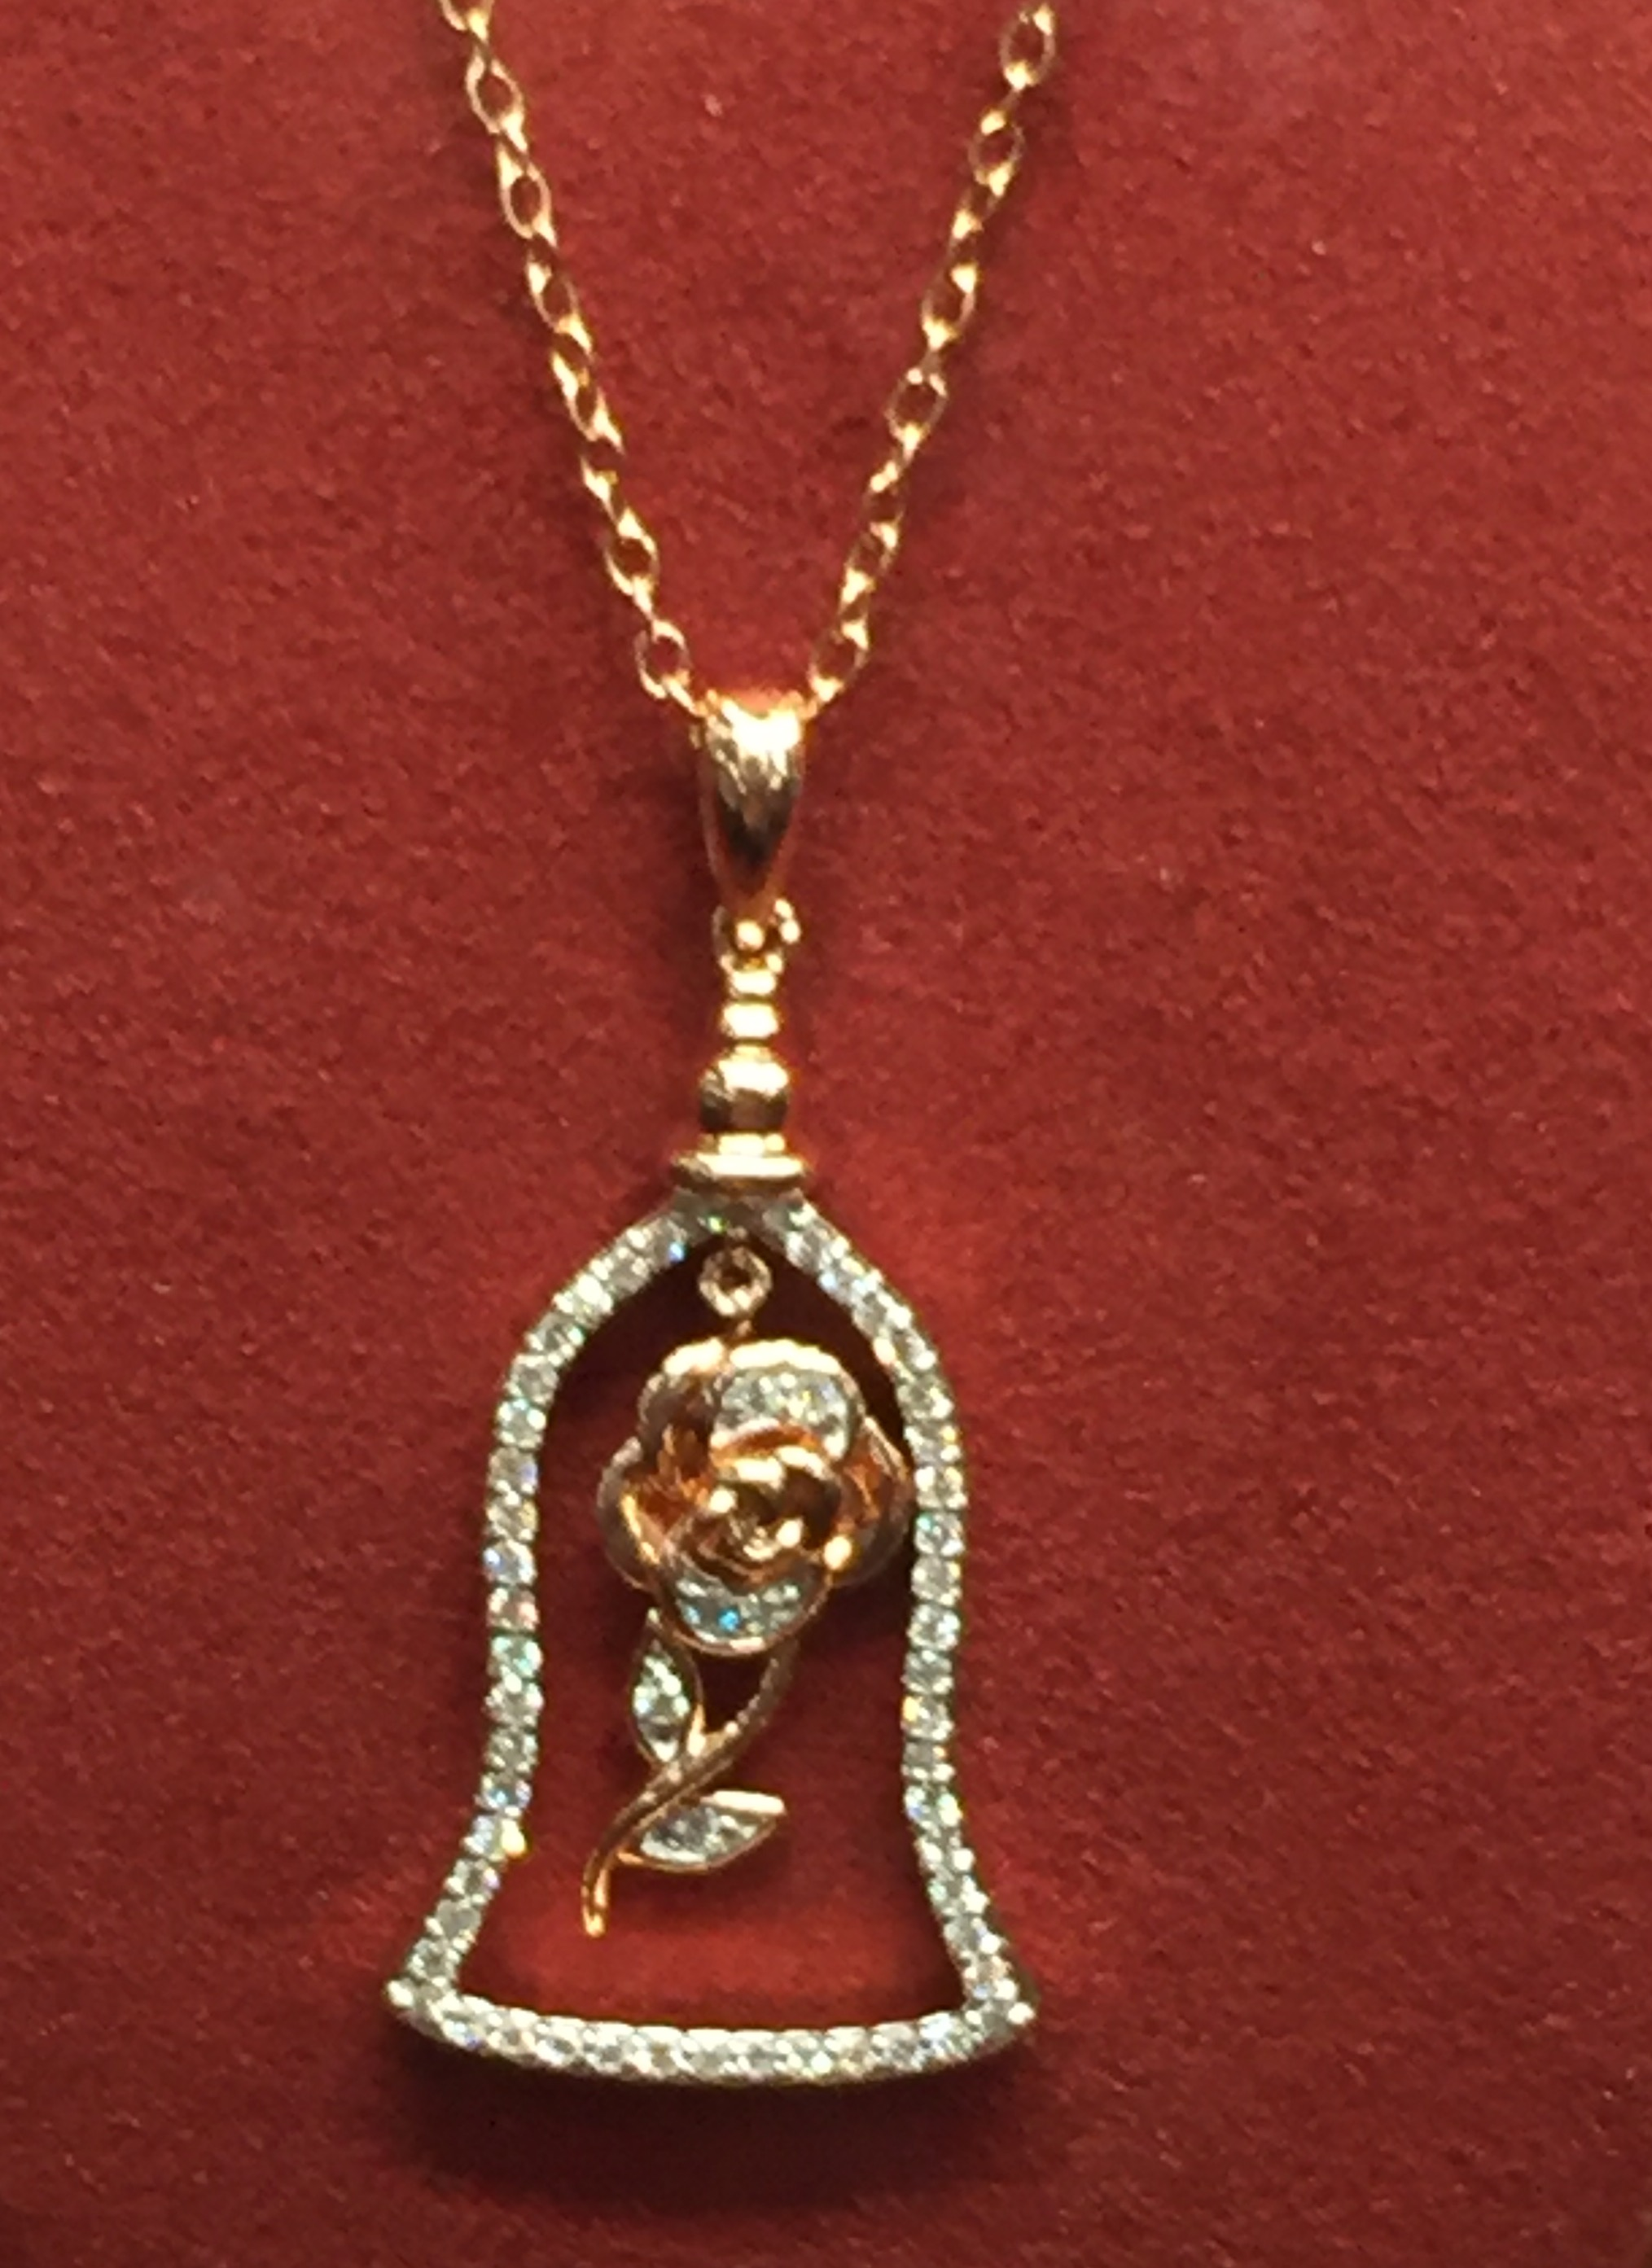 Disney 39 s beauty and the beast jewelry will enchant you for Disney beauty and the beast jewelry